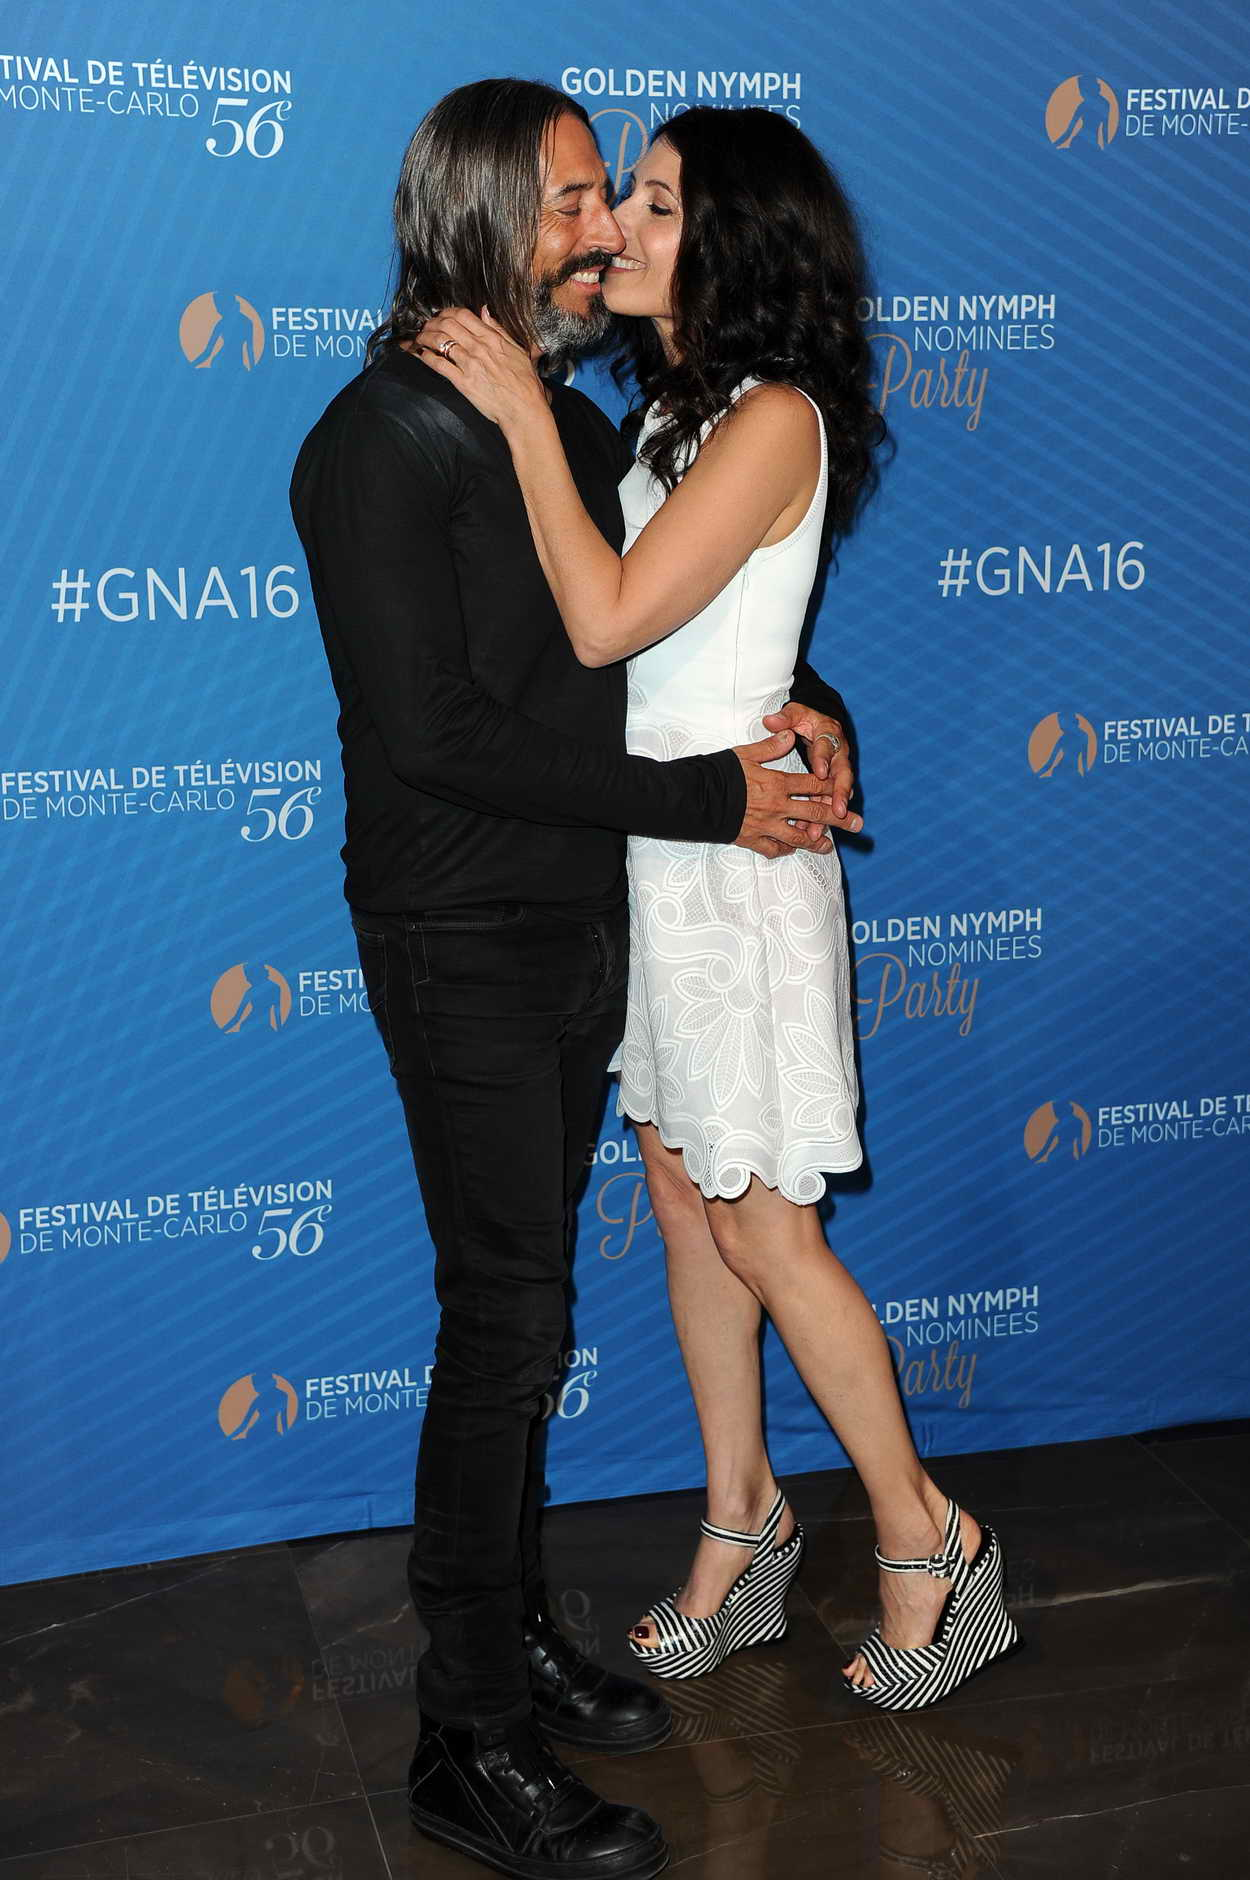 Lisa Edelstein at the Golden Nymph Nominee Party During